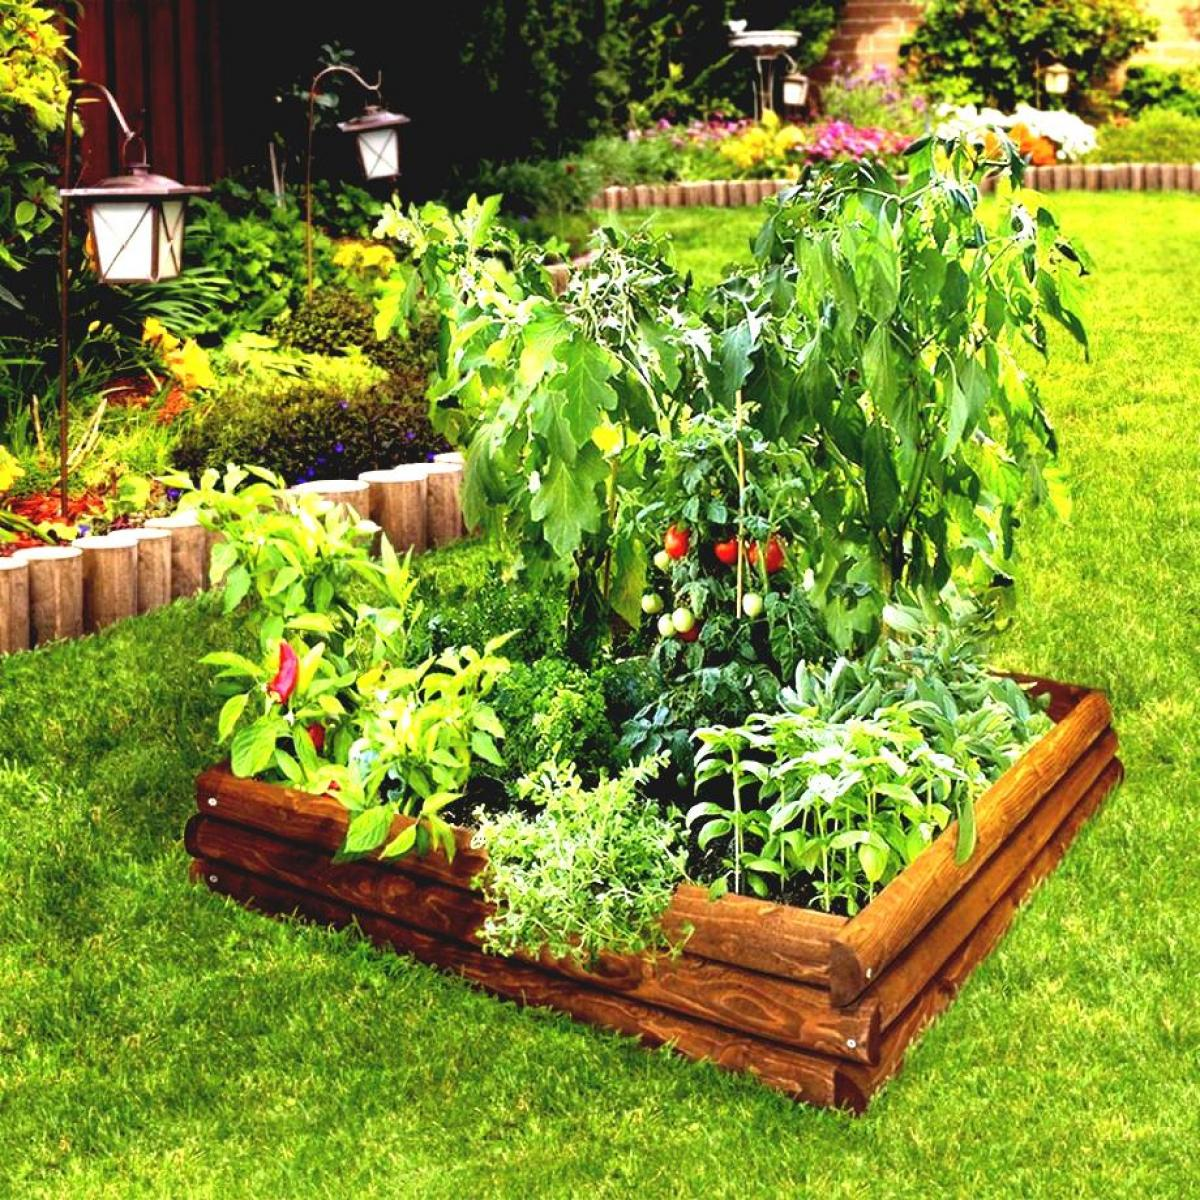 Enchanting small kitchen garden on backyard for Small kitchen garden